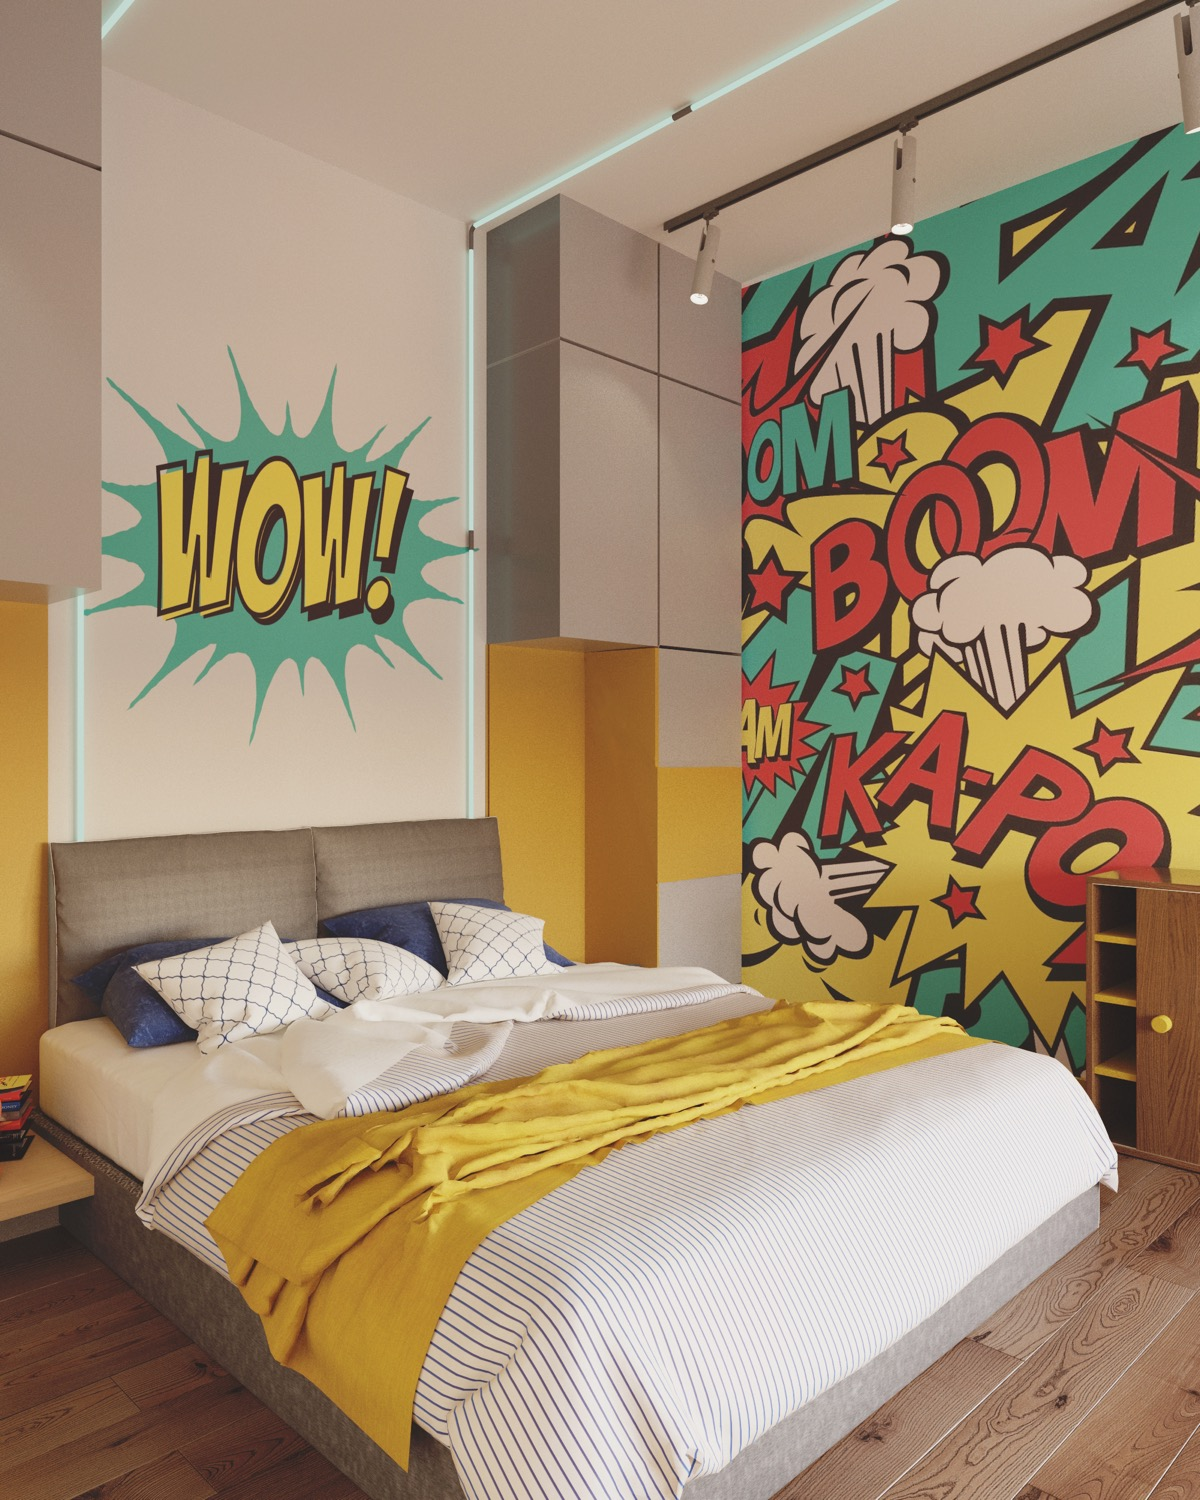 Comic Book Room Ideas: Stylish Bedrooms Designed For Kids